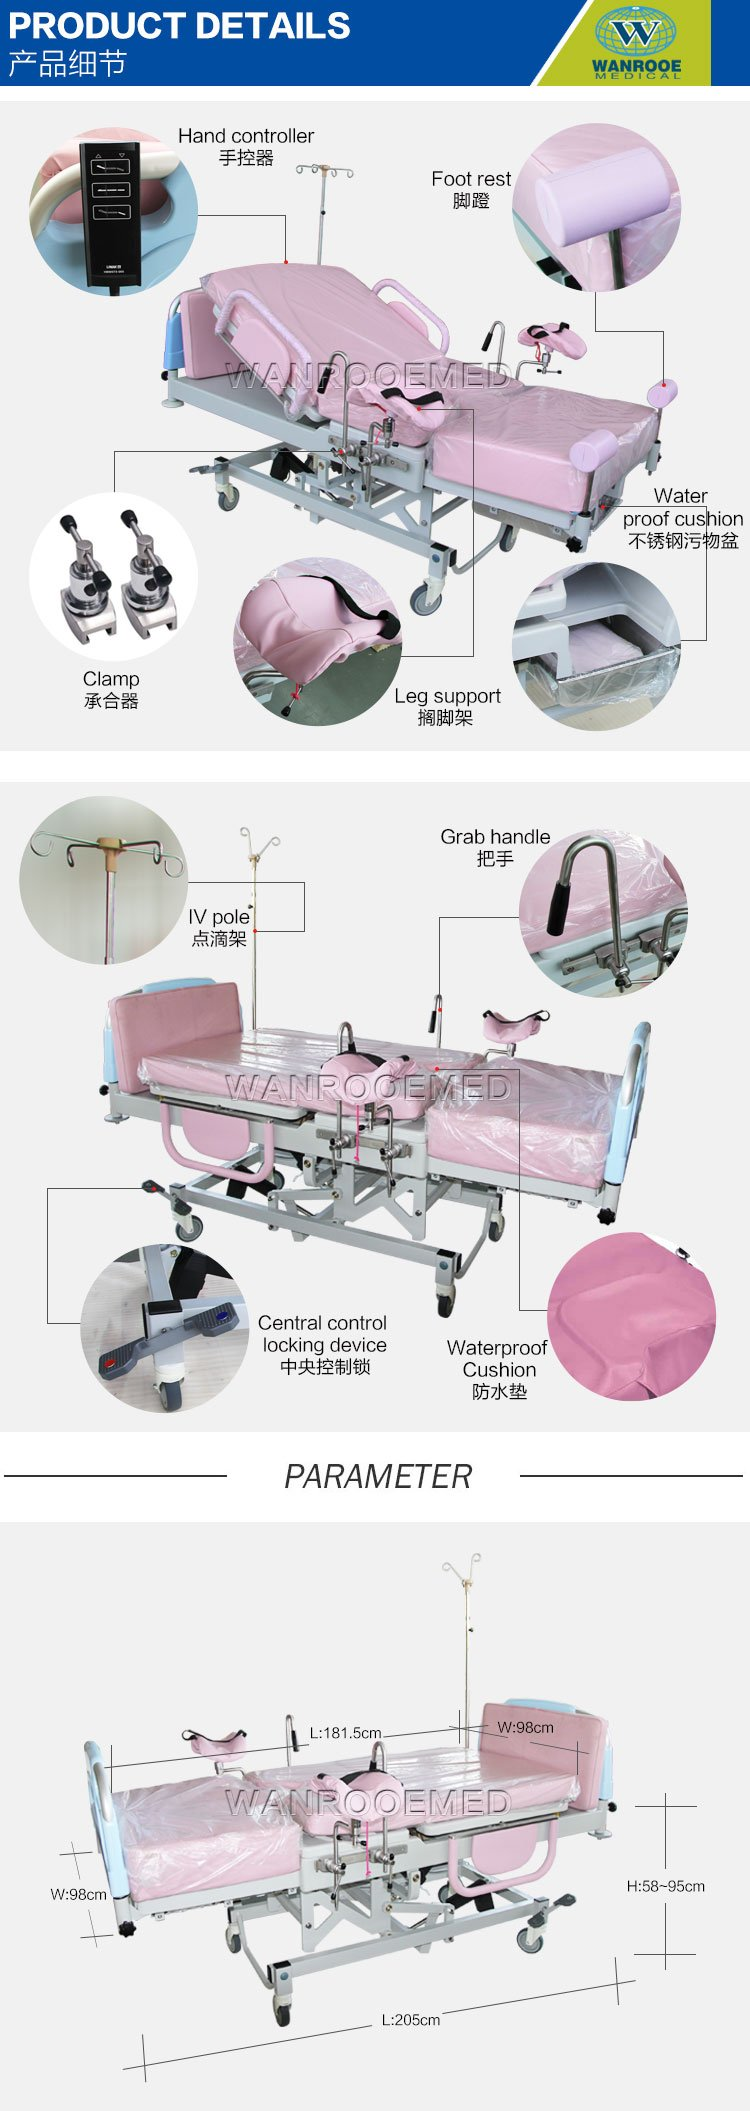 Delivery Bed, Obstetric Delivery Table, Electronic Hospital Delivery Bed, Medical Delivery Table, Birth Bed